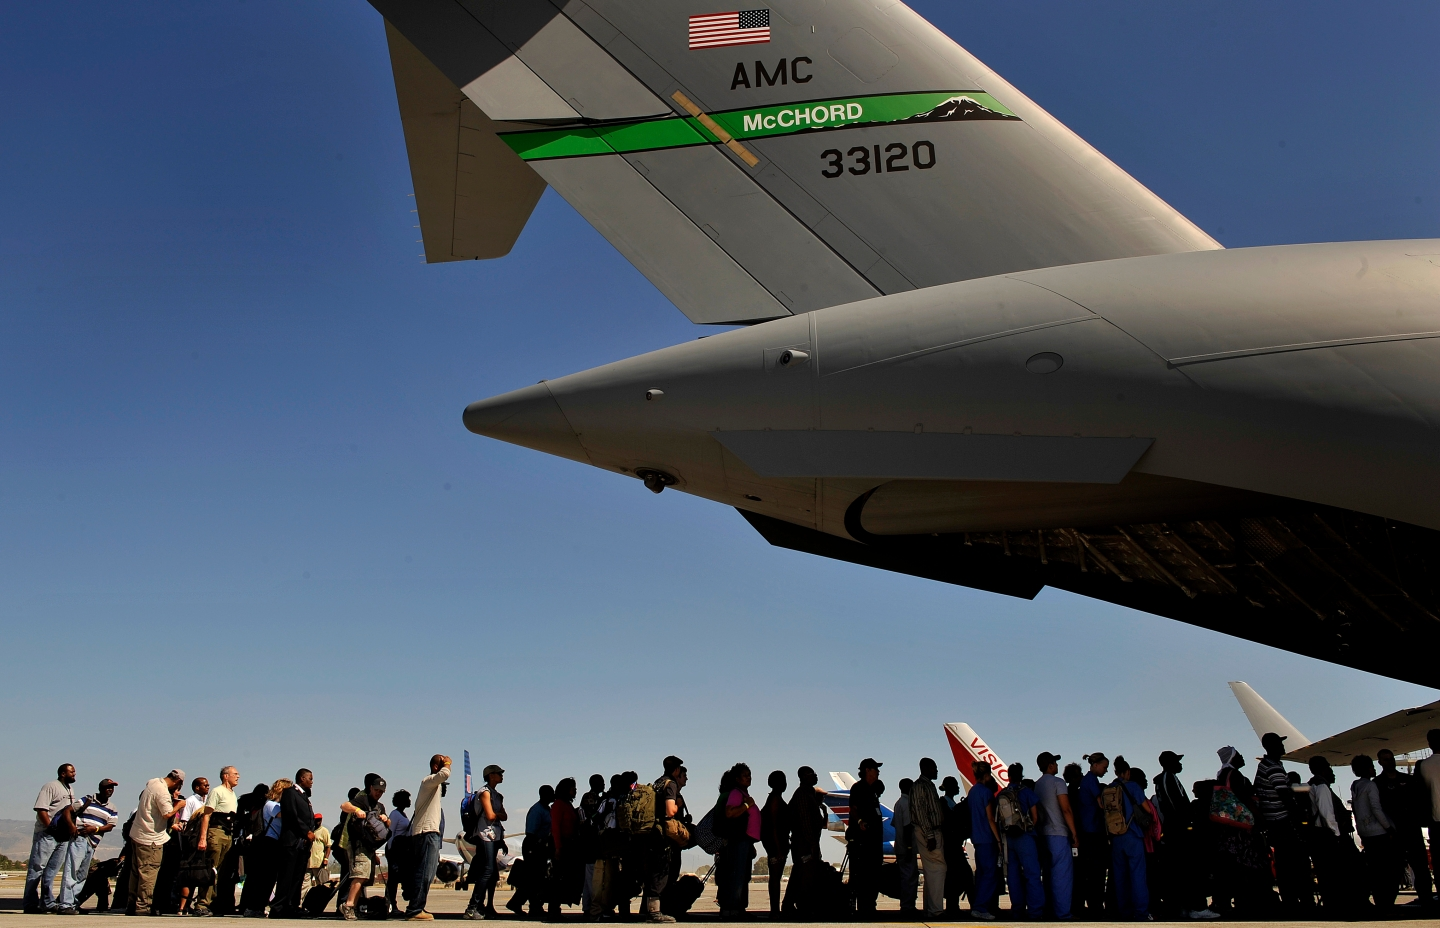 Haitian evacuees wait to board a U.S. Air Force C-17 Globemaster III aircraft at the Toussaint L?Ouverture International Airport in Port-au-Prince, Haiti, Jan. 28, 2010. During the flight, more than 100 Haitians were evacuated to a transition center in Orlando, Fla. The Department of Defense and the U.S. Agency for International Development are conducting the operation to provide aid and relief to Haitian citizens affected by the 7.0-magnitude earthquake that struck the region Jan. 12, 2010. (DoD photo by Staff Sgt. Clay Lancaster, U.S. Air Force/Released)